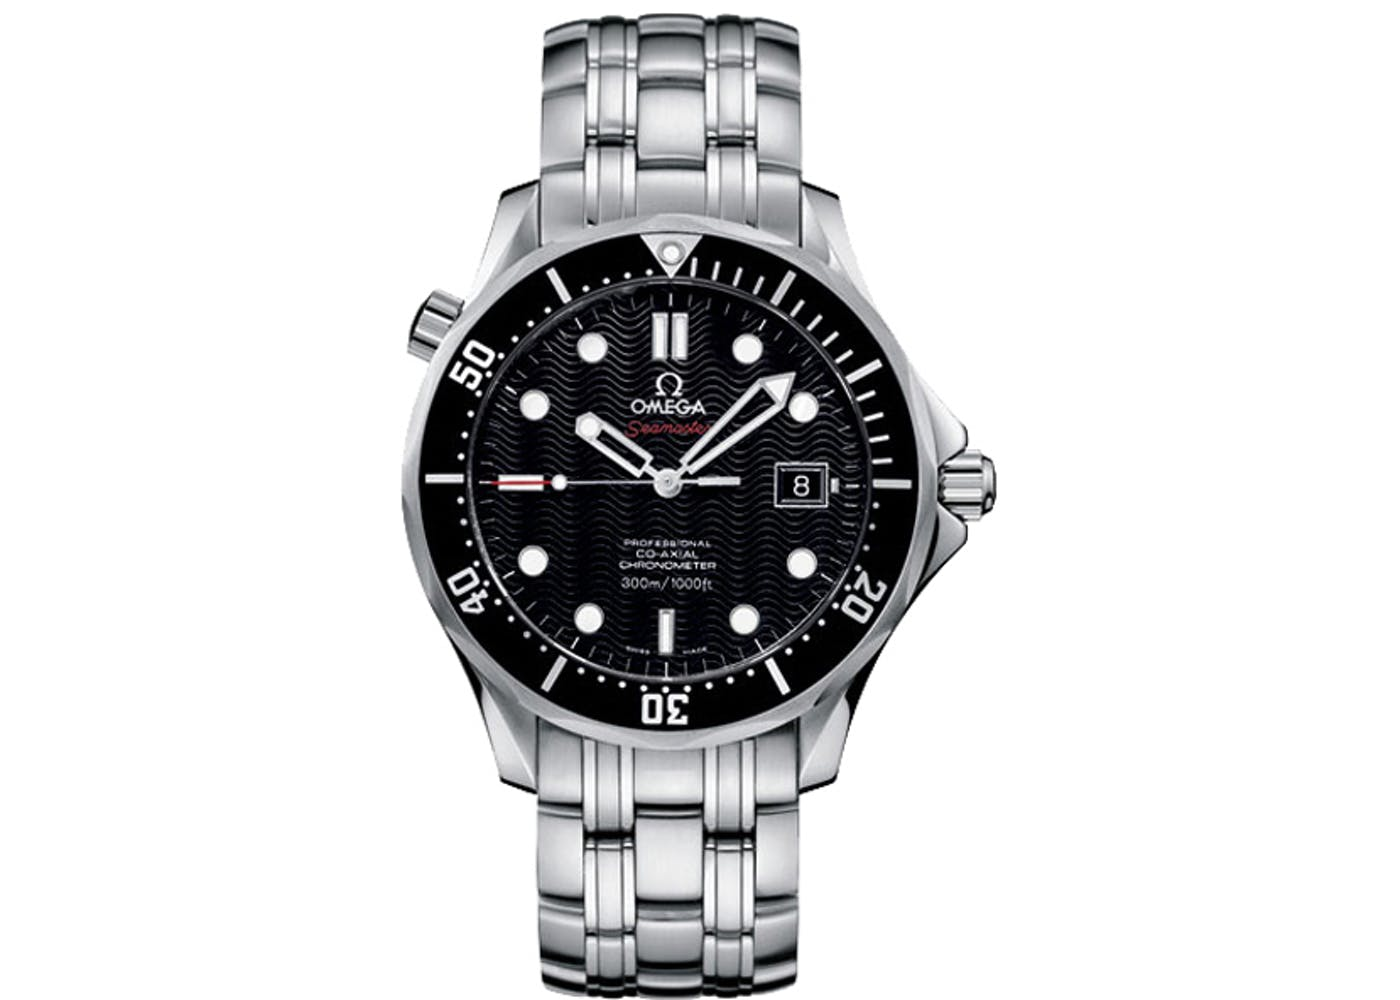 Omega Seamaster James Bond 21230412001002 Black